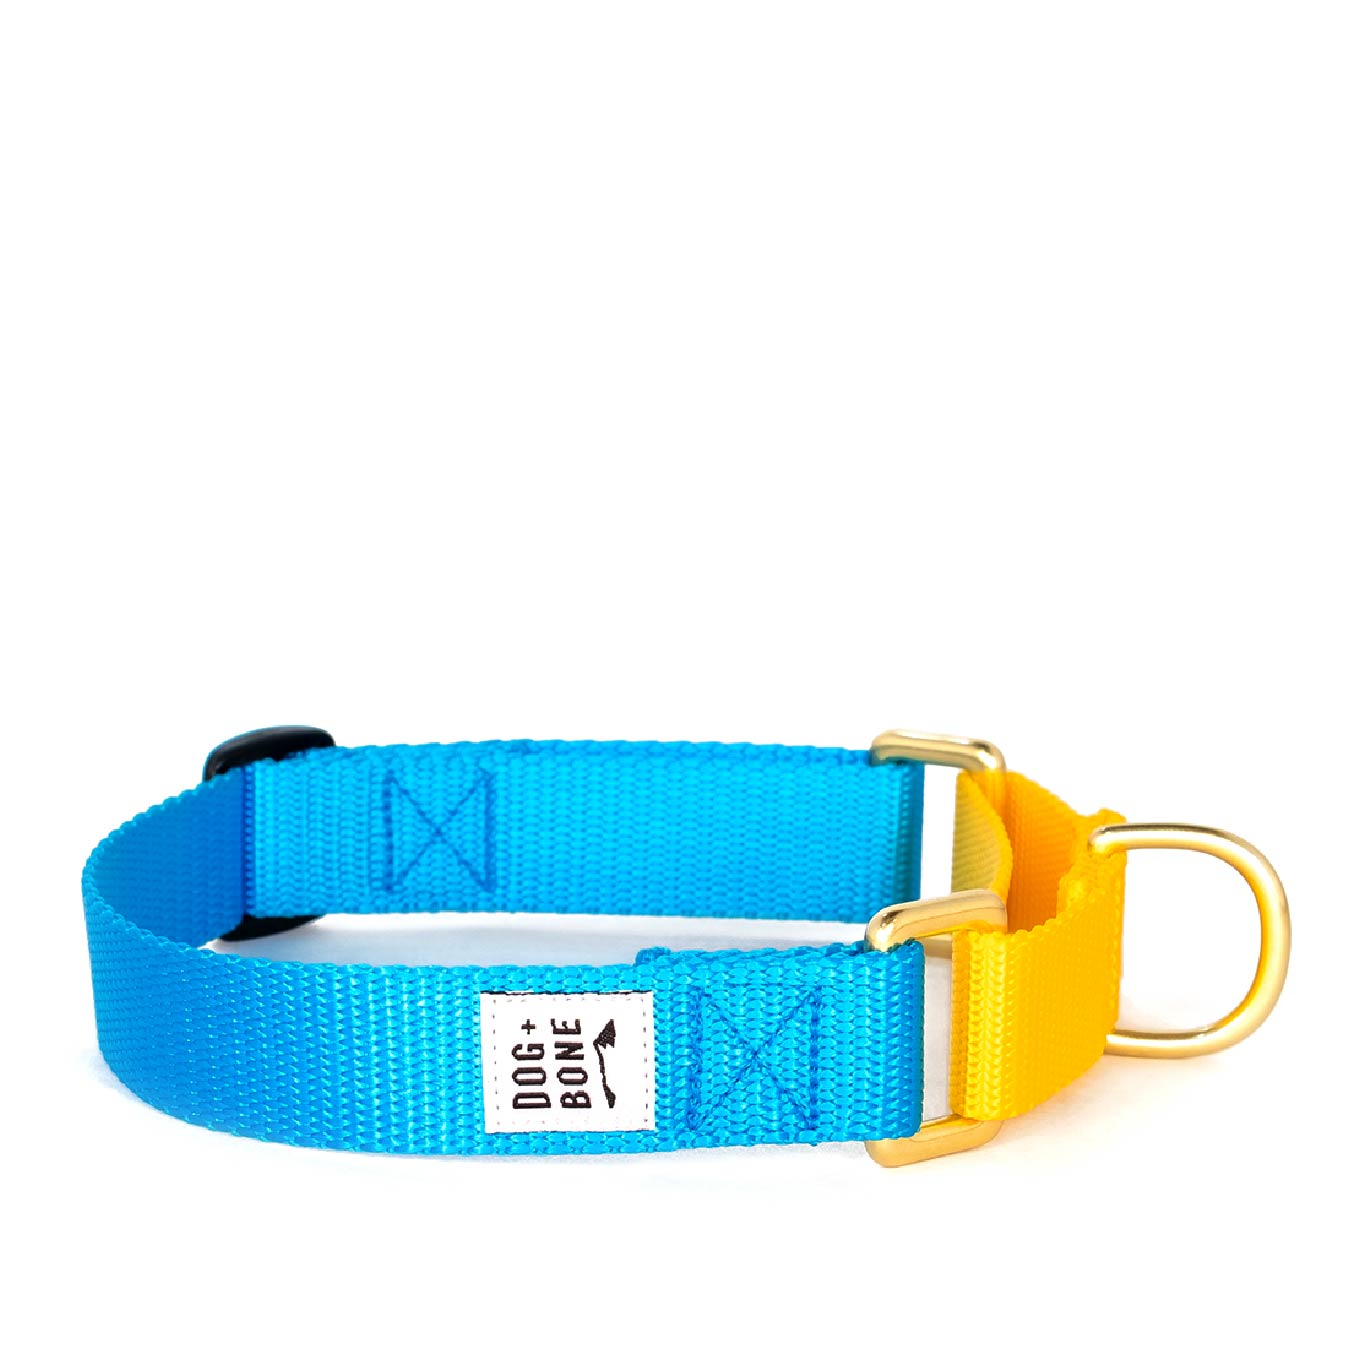 Dog + Bone Martingale Collar | Blue & Yellow - Vanillapup Online Pet Shop